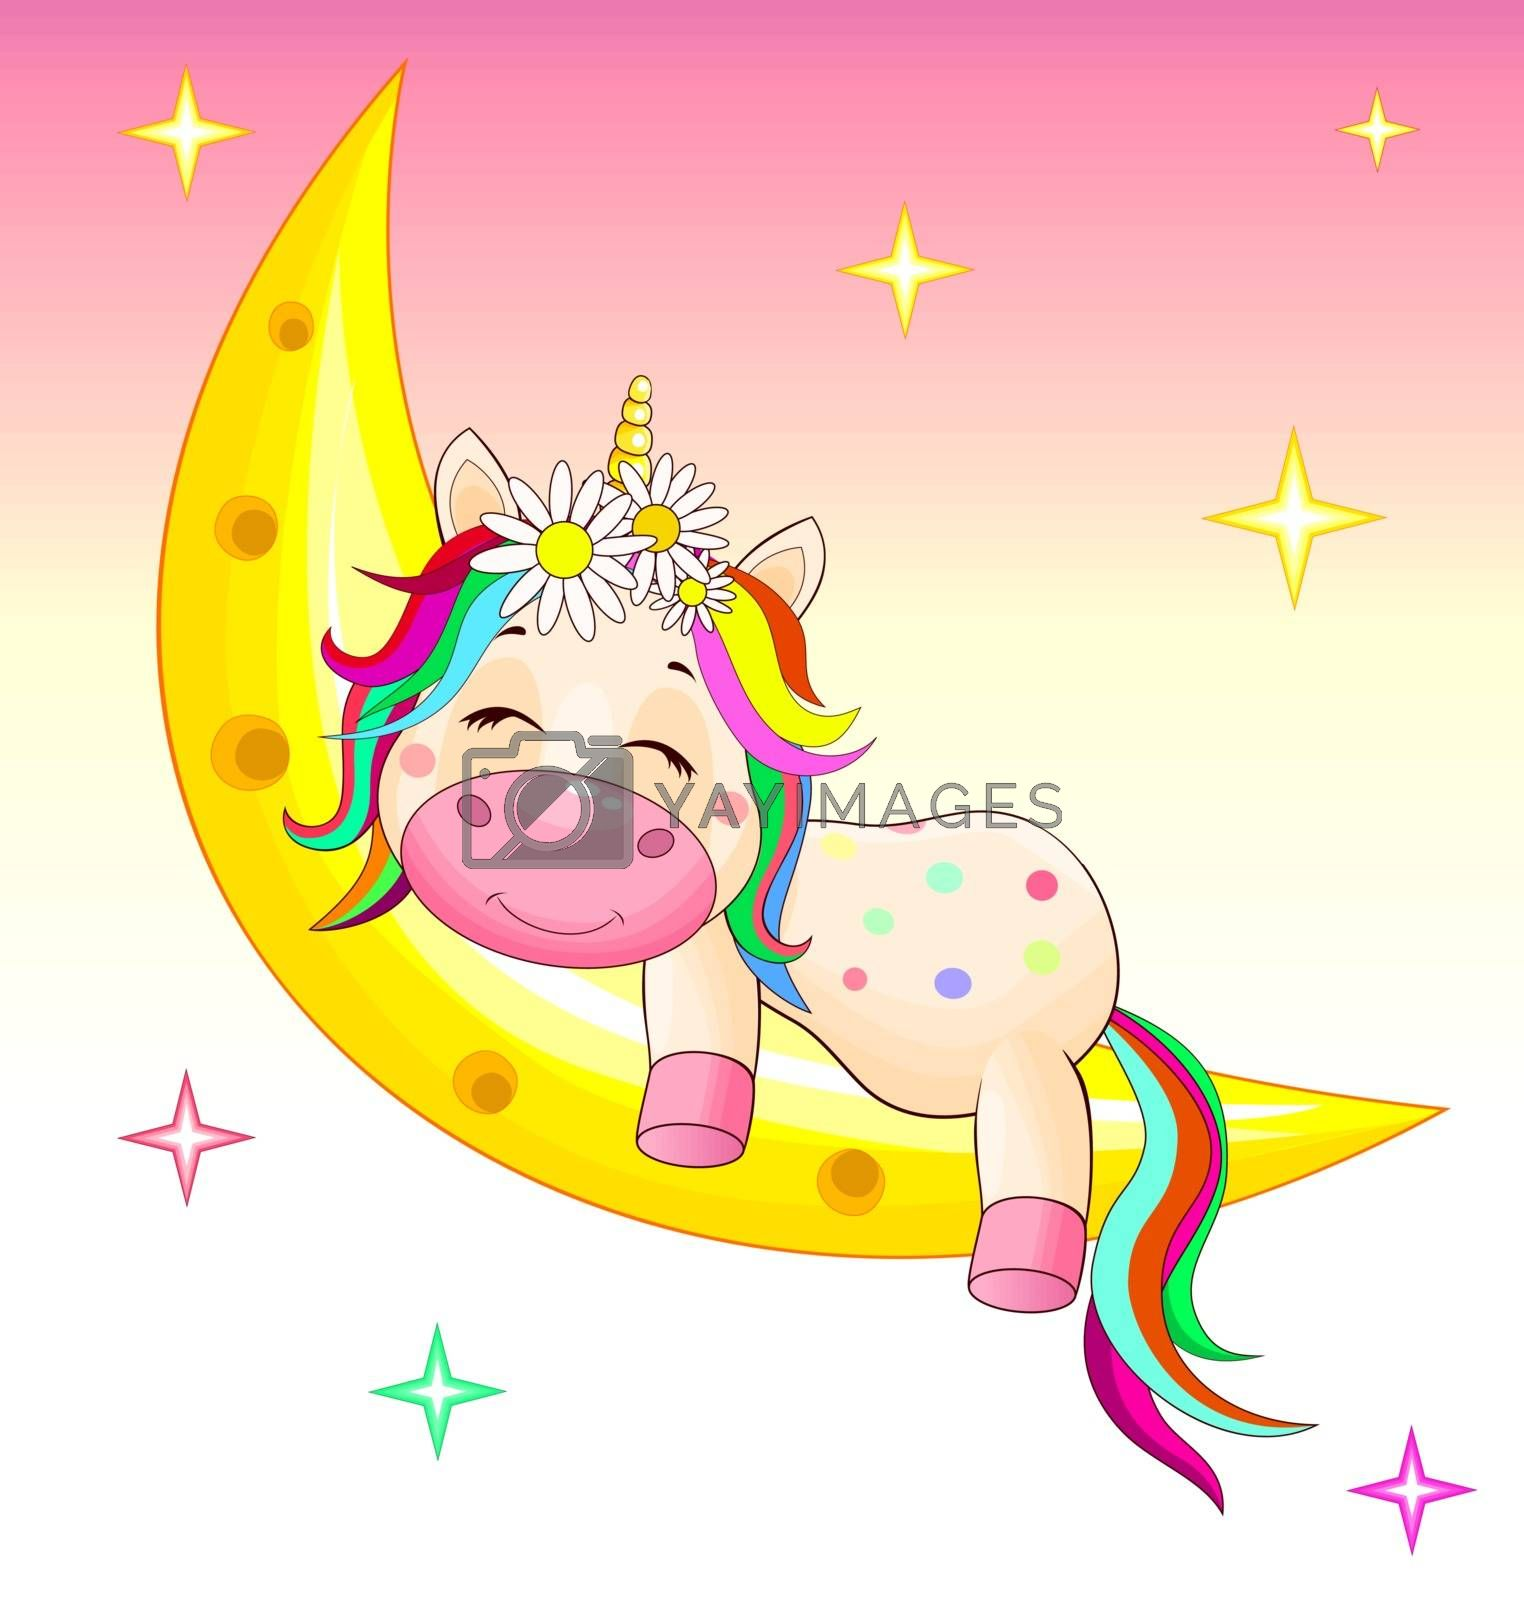 Baby unicorn on the moon by liolle